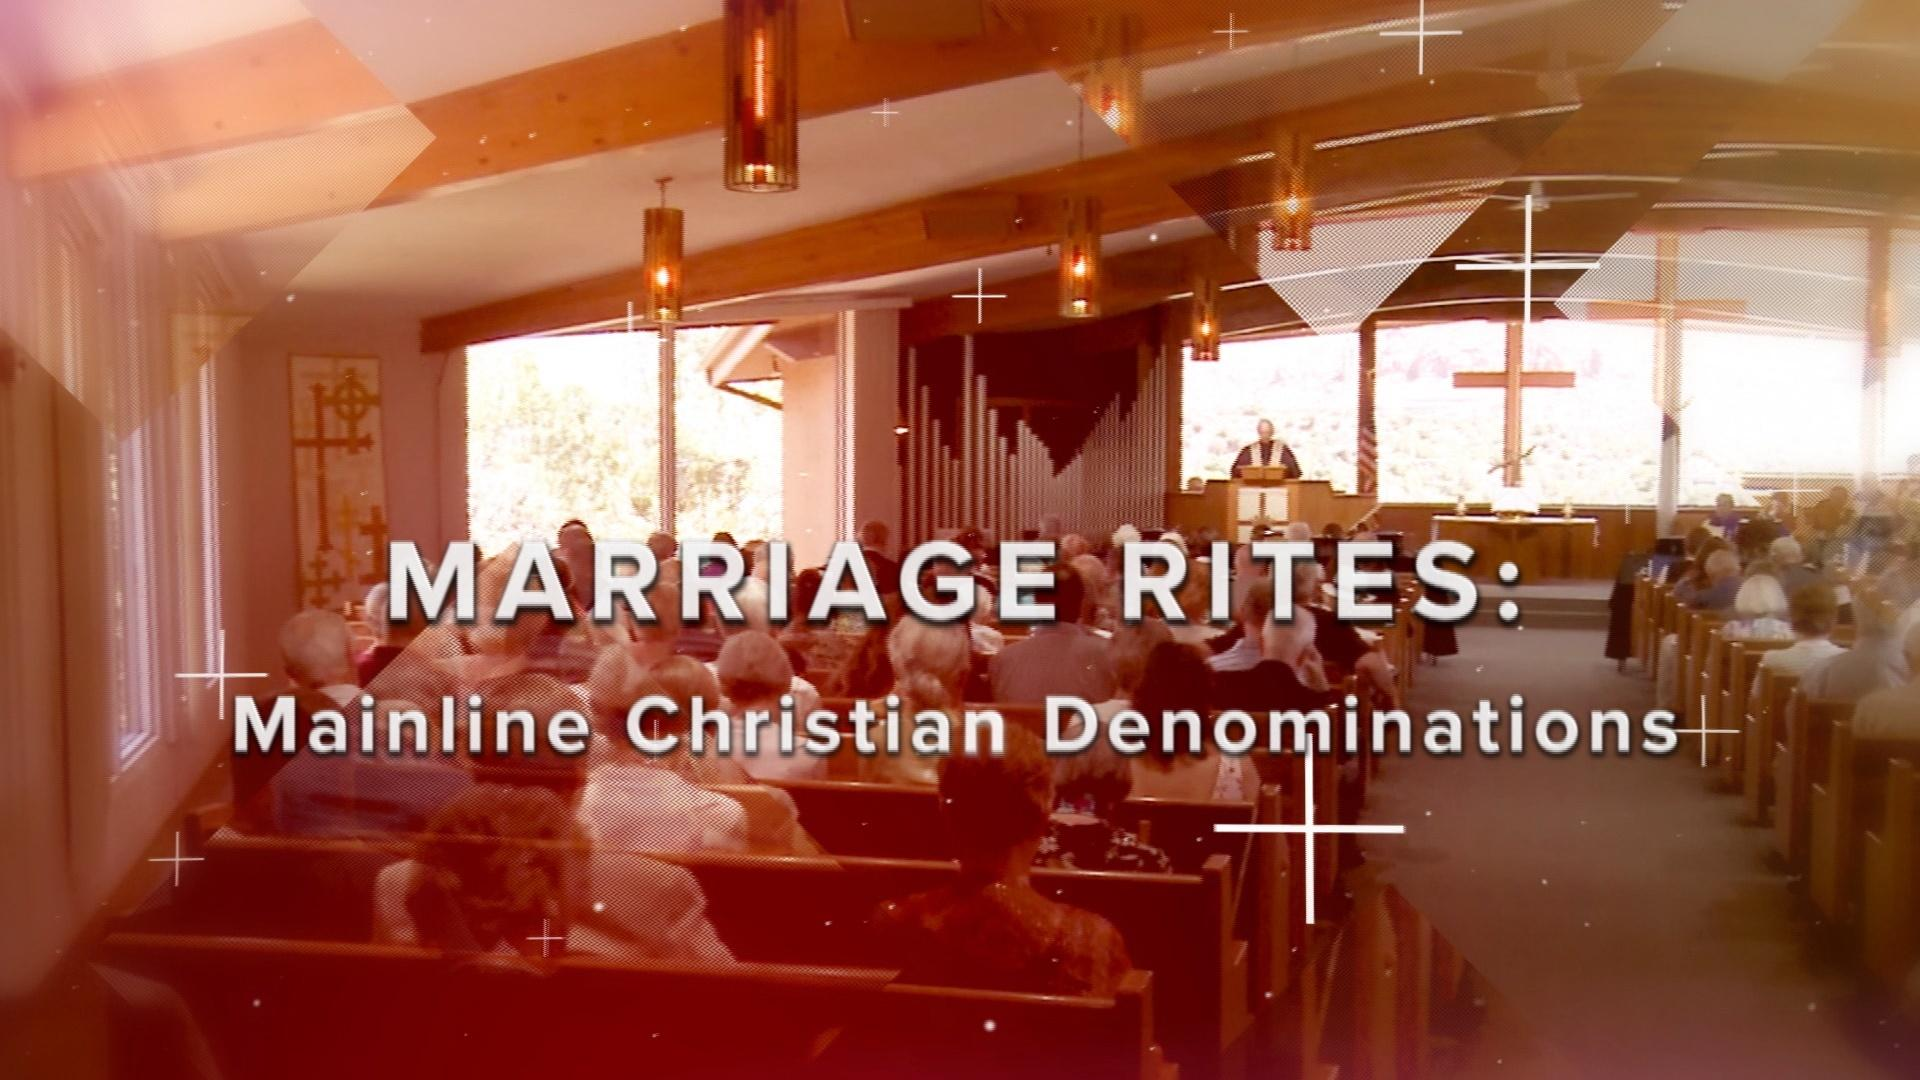 Marriage Rites in Mainline Christian Churches